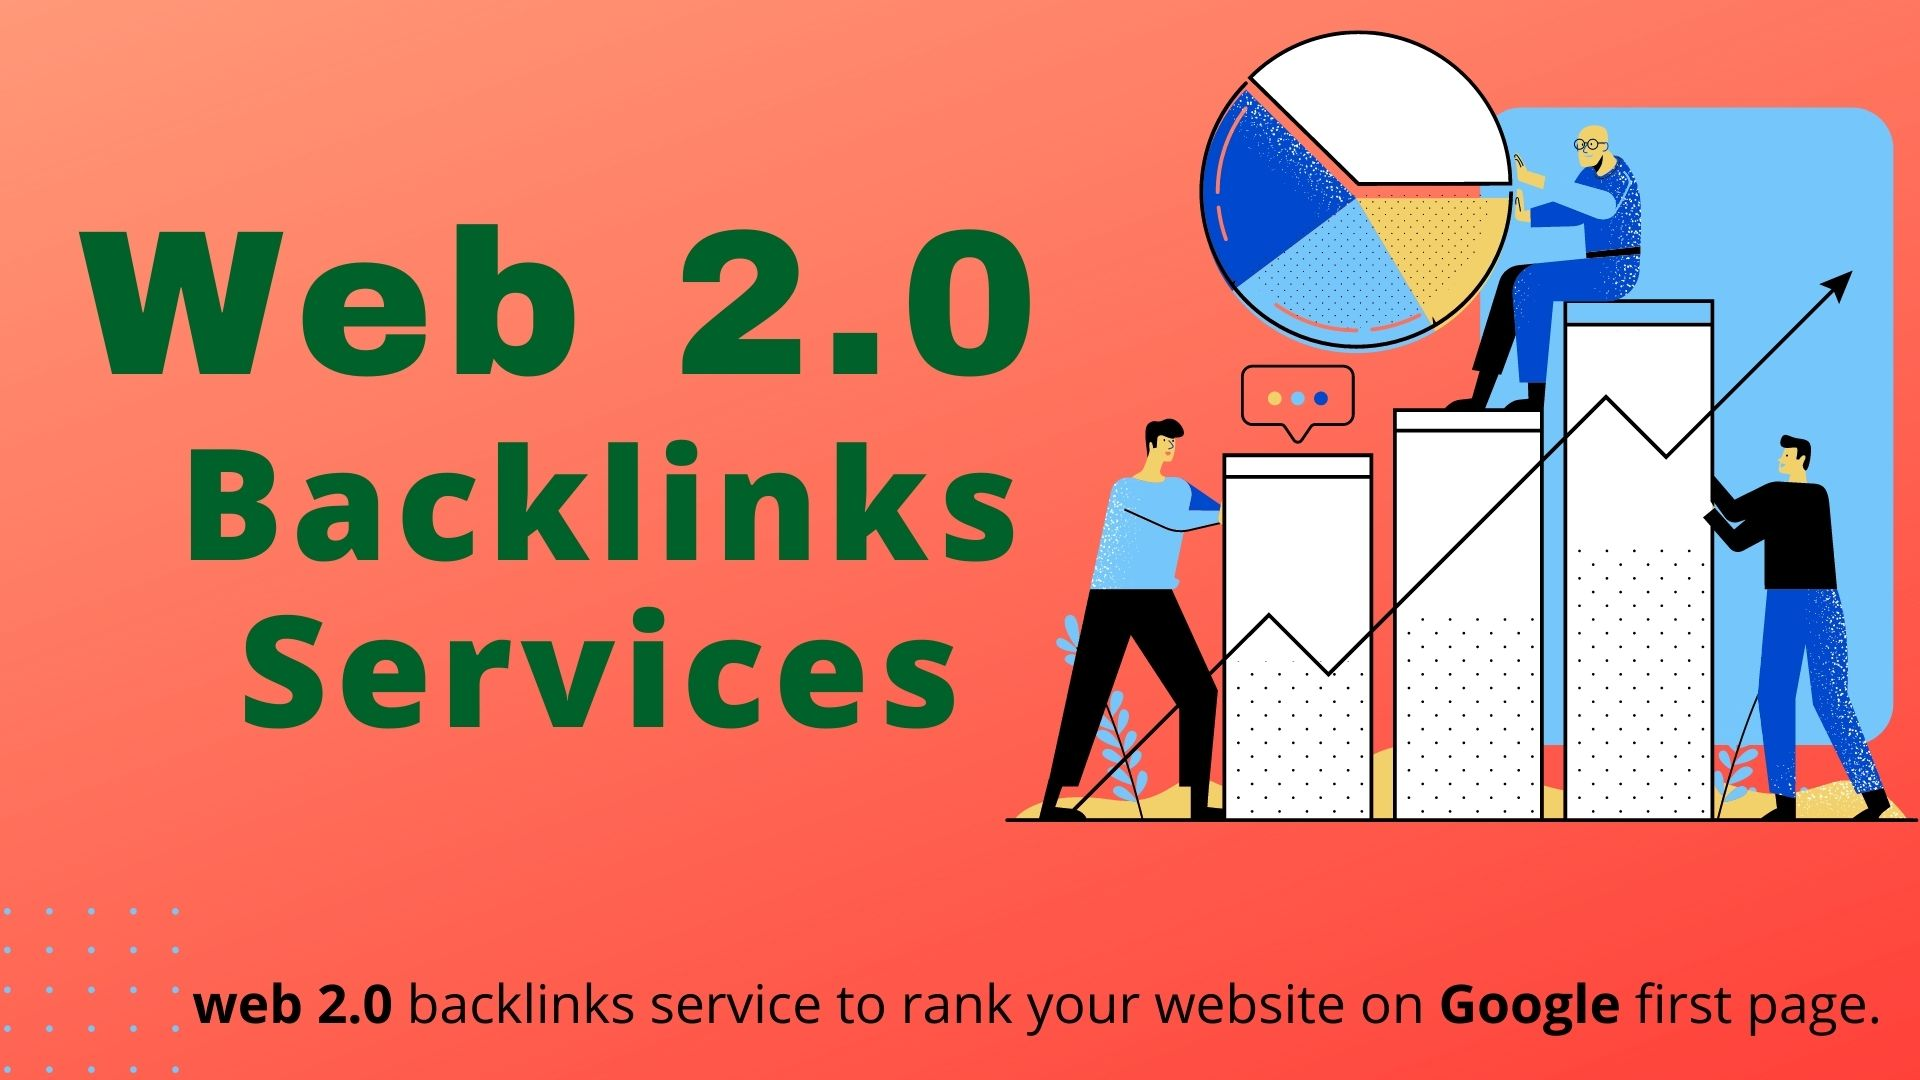 I Will Create 30 High Quality Web 2.0 Backlinks.